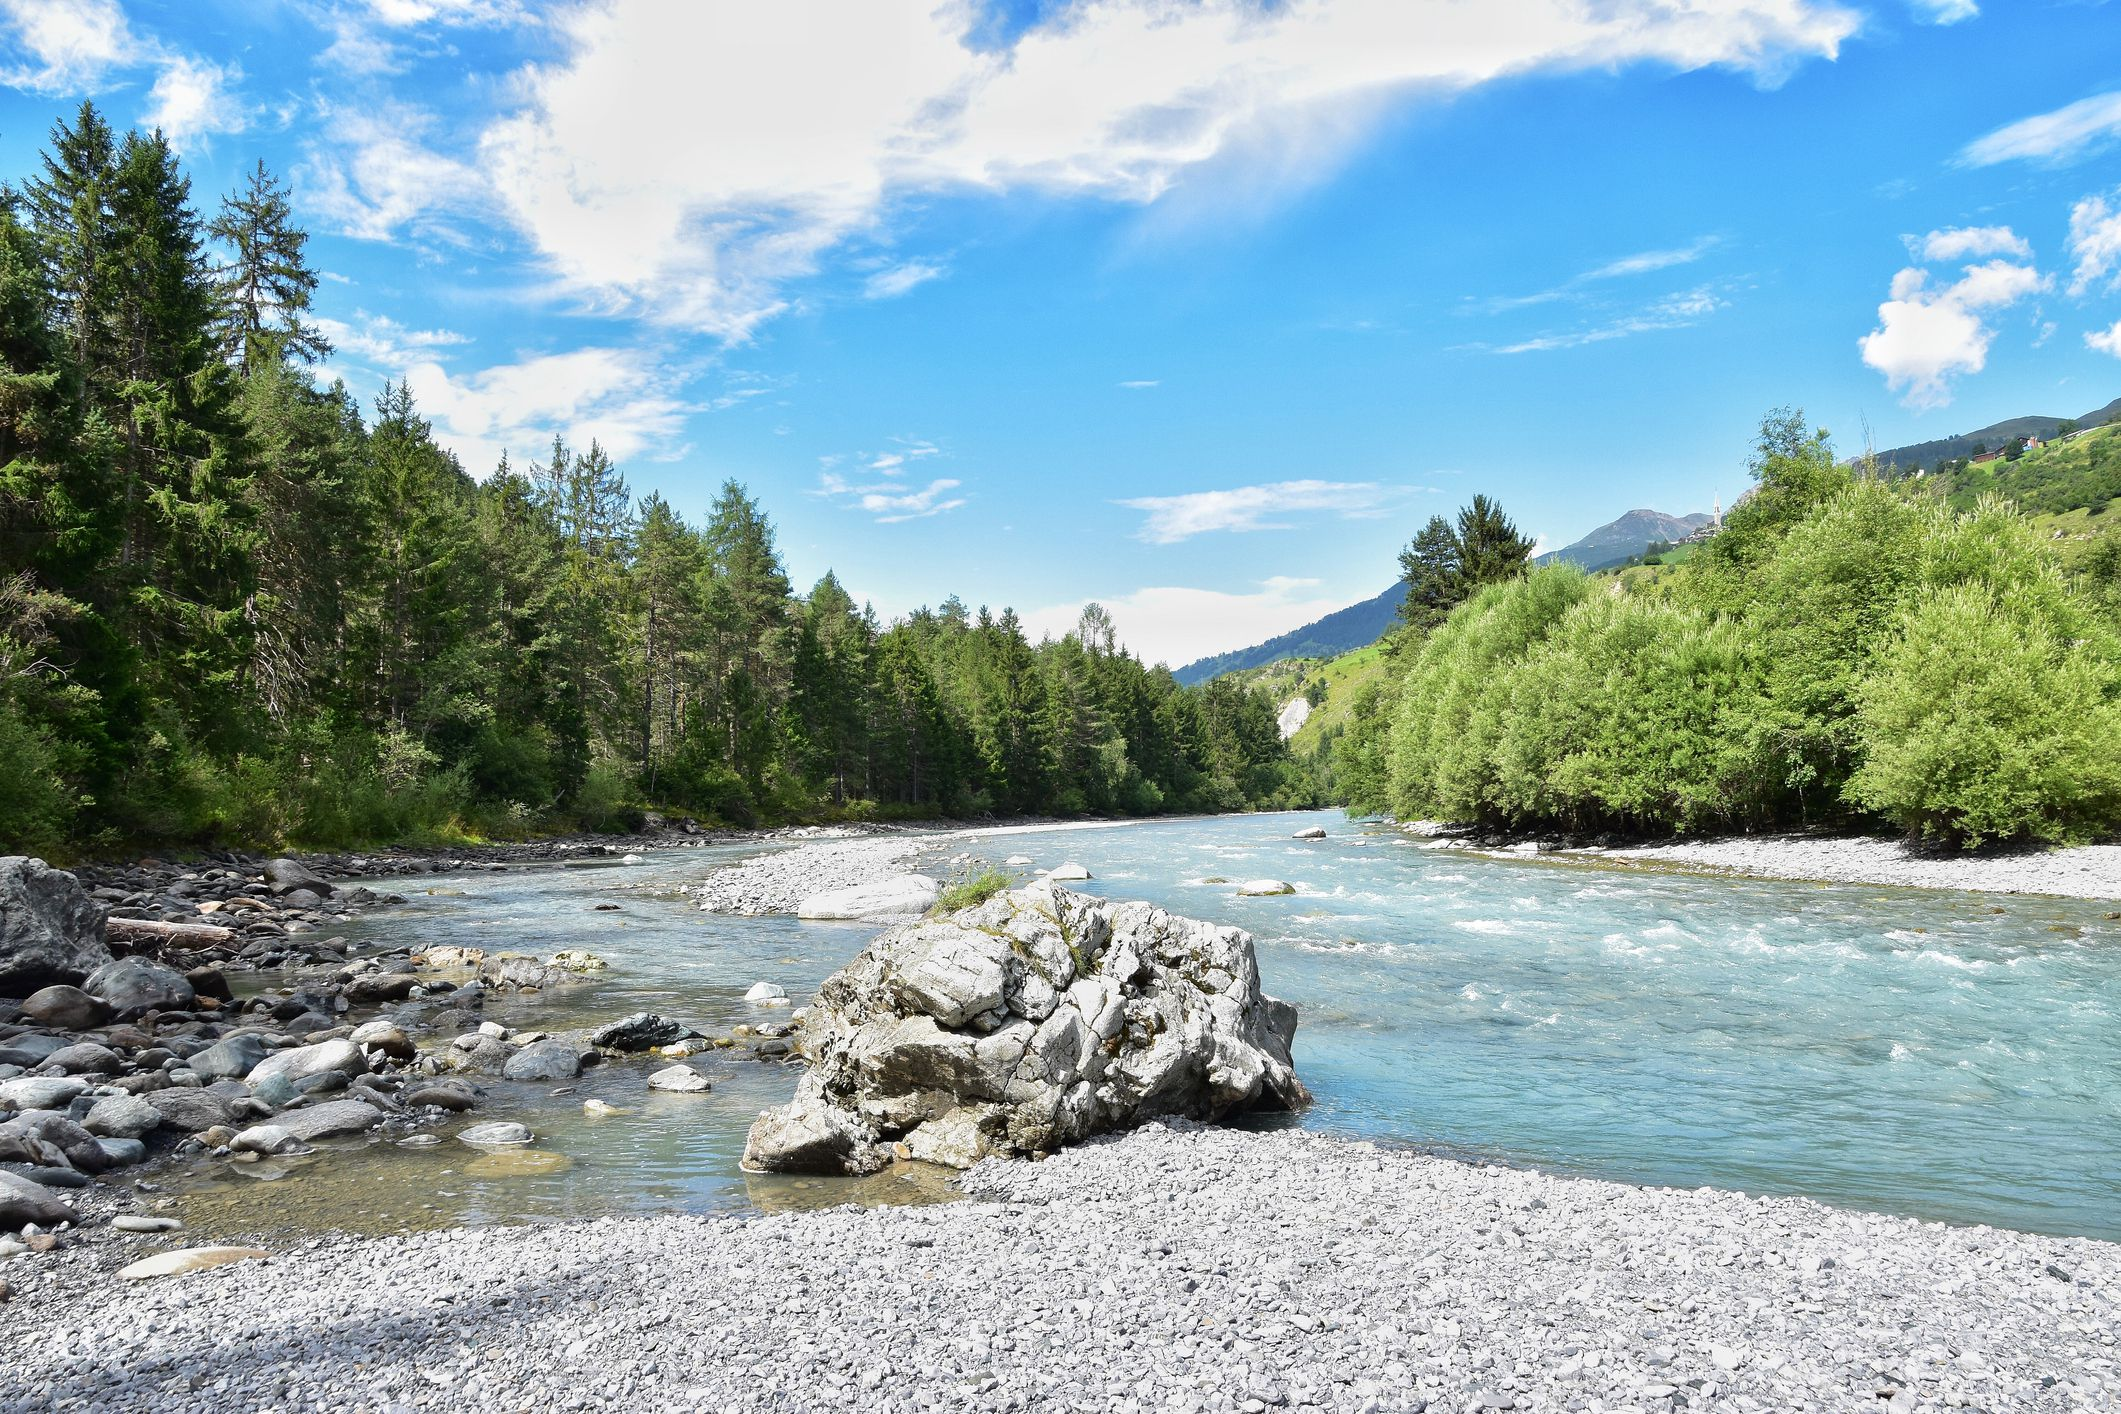 scenic river set against trees and blue sky